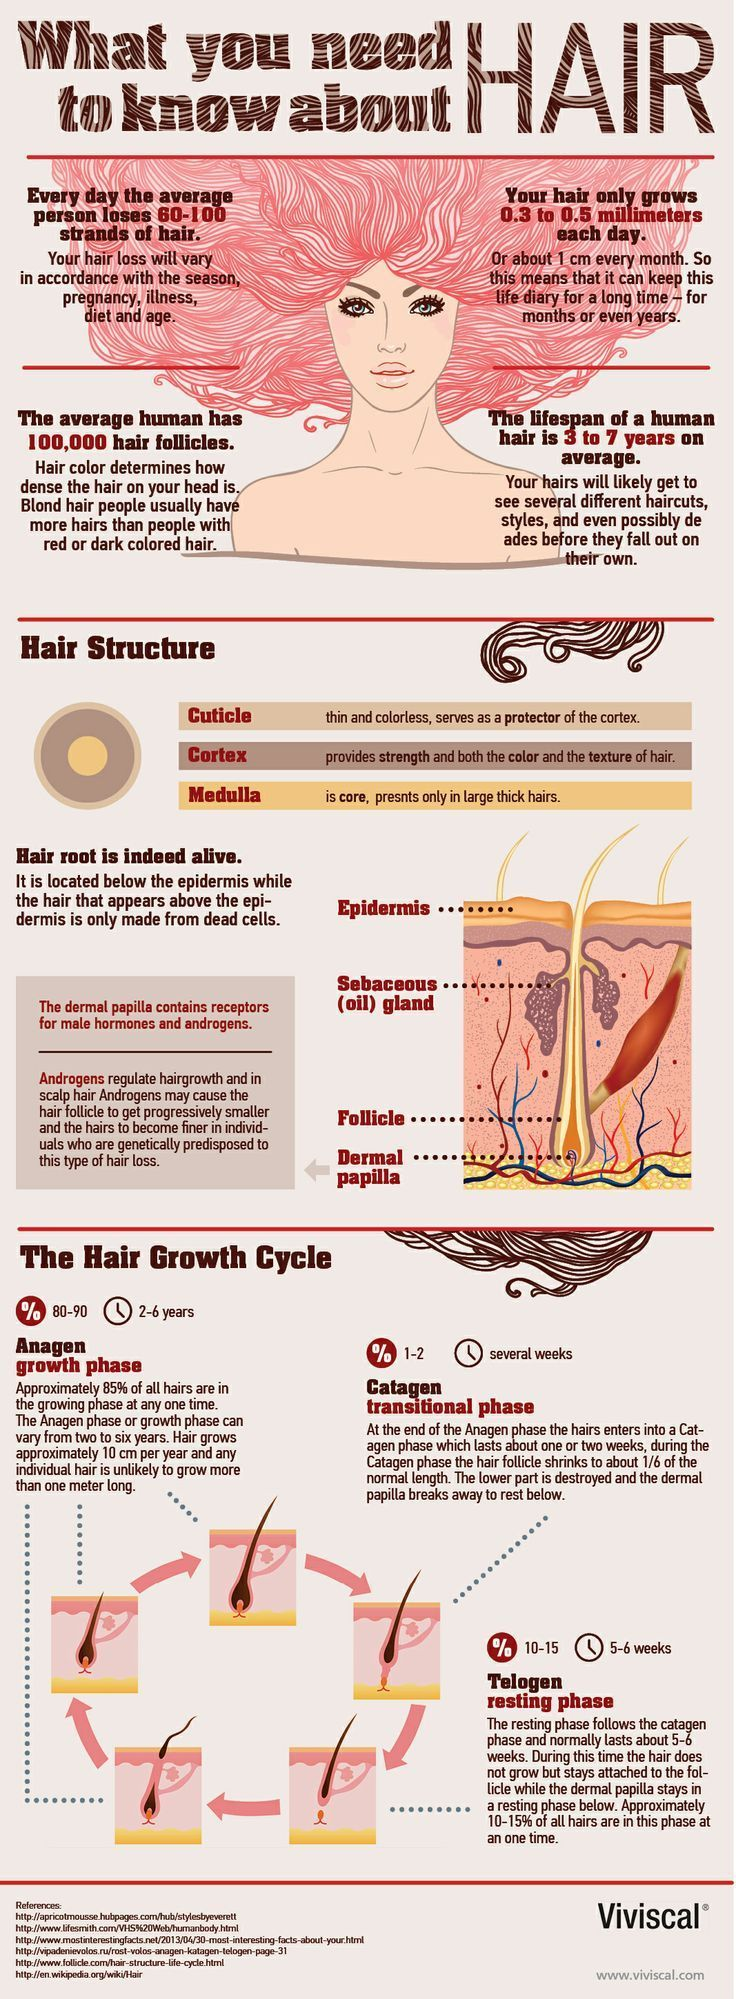 The Average hair growth is actually 1/2 inch.